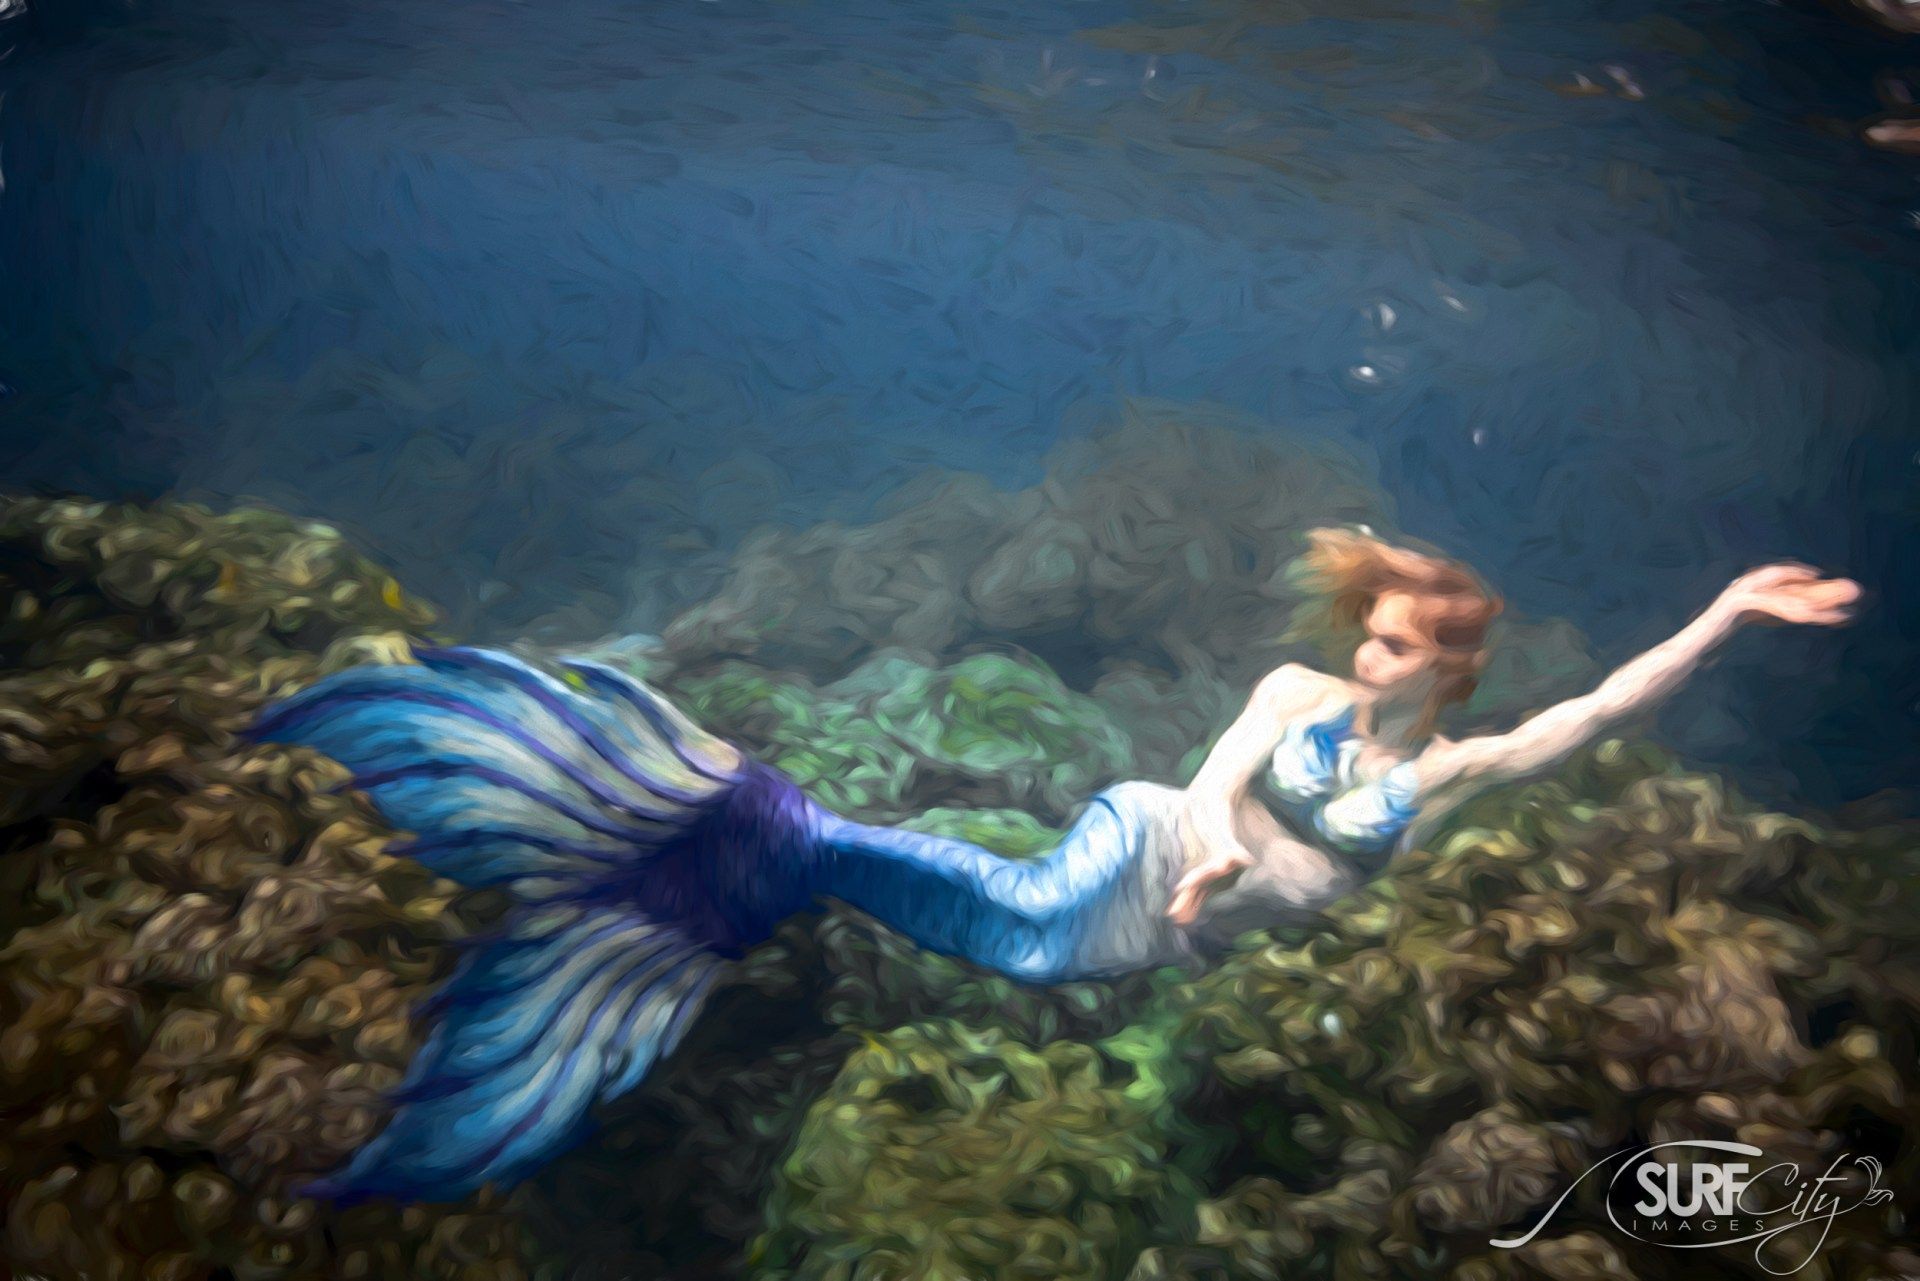 Underwater Mermaids Captain Cook Marine Sanctuary